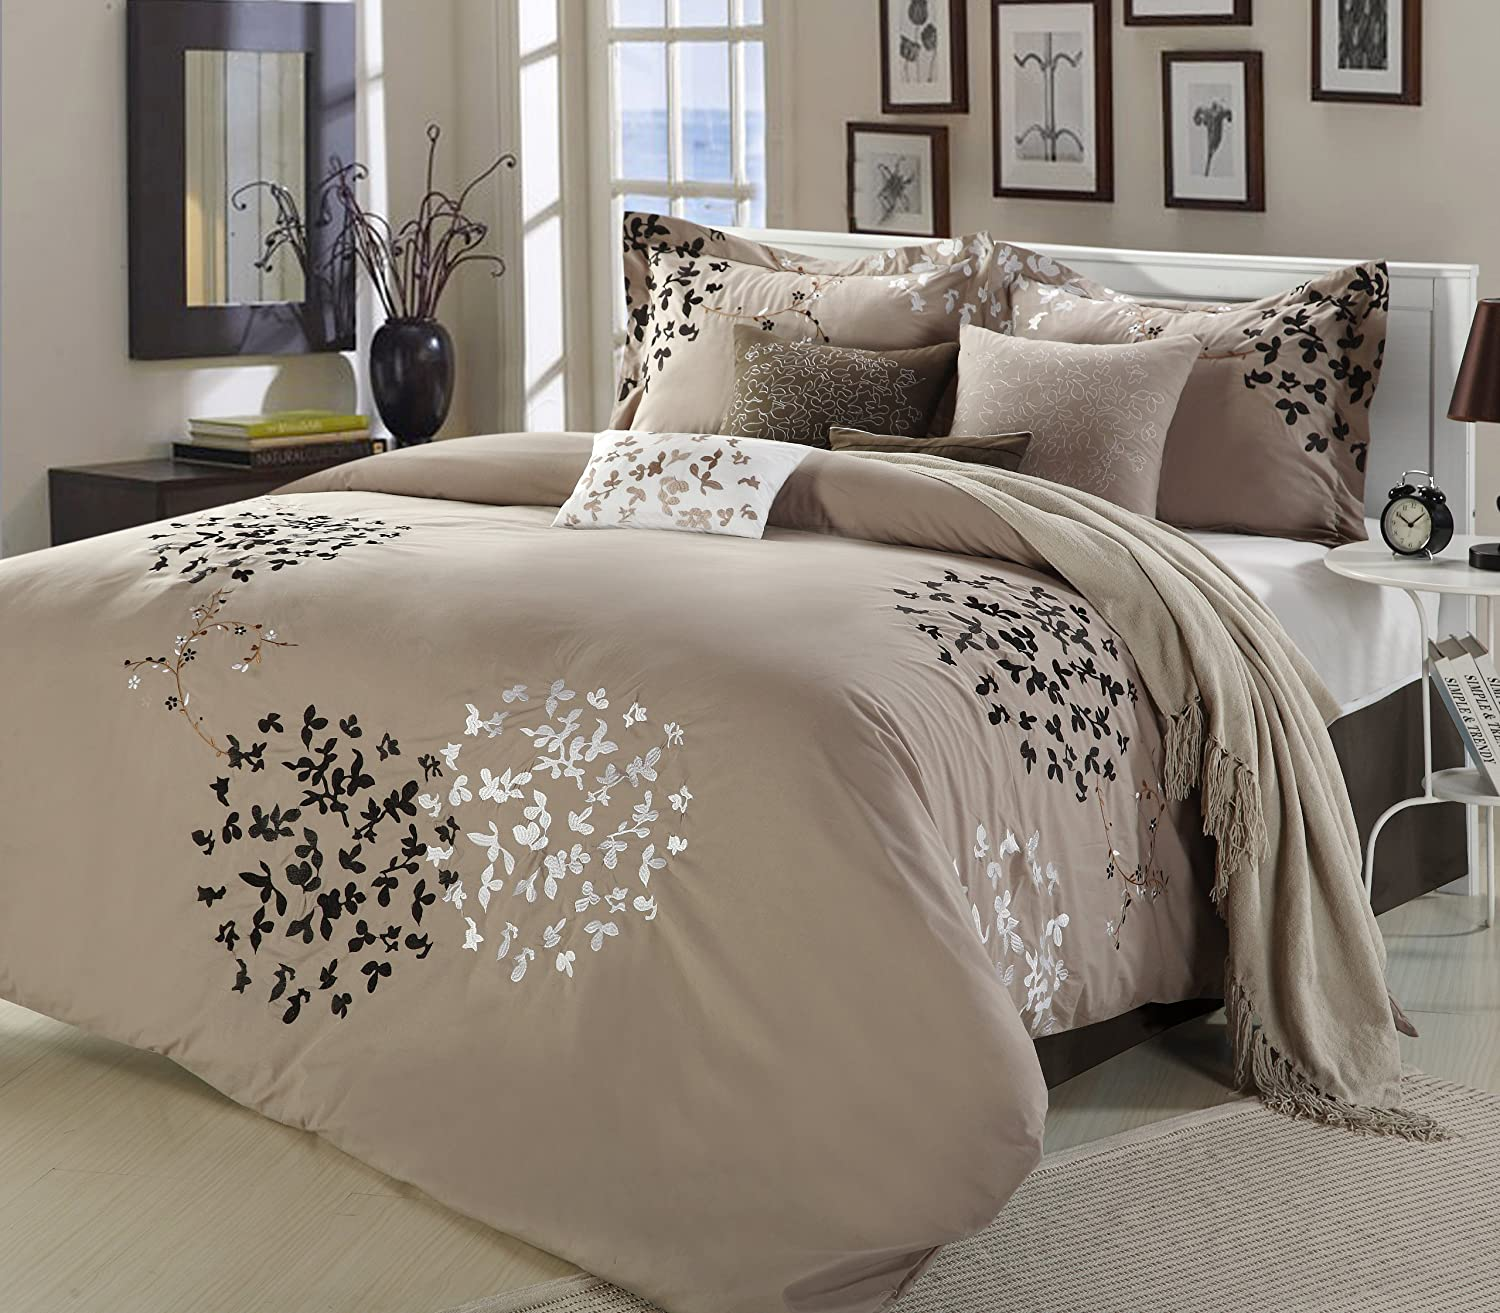 la ohlala comforters oh bedroom piece set queen reversible comforter sets